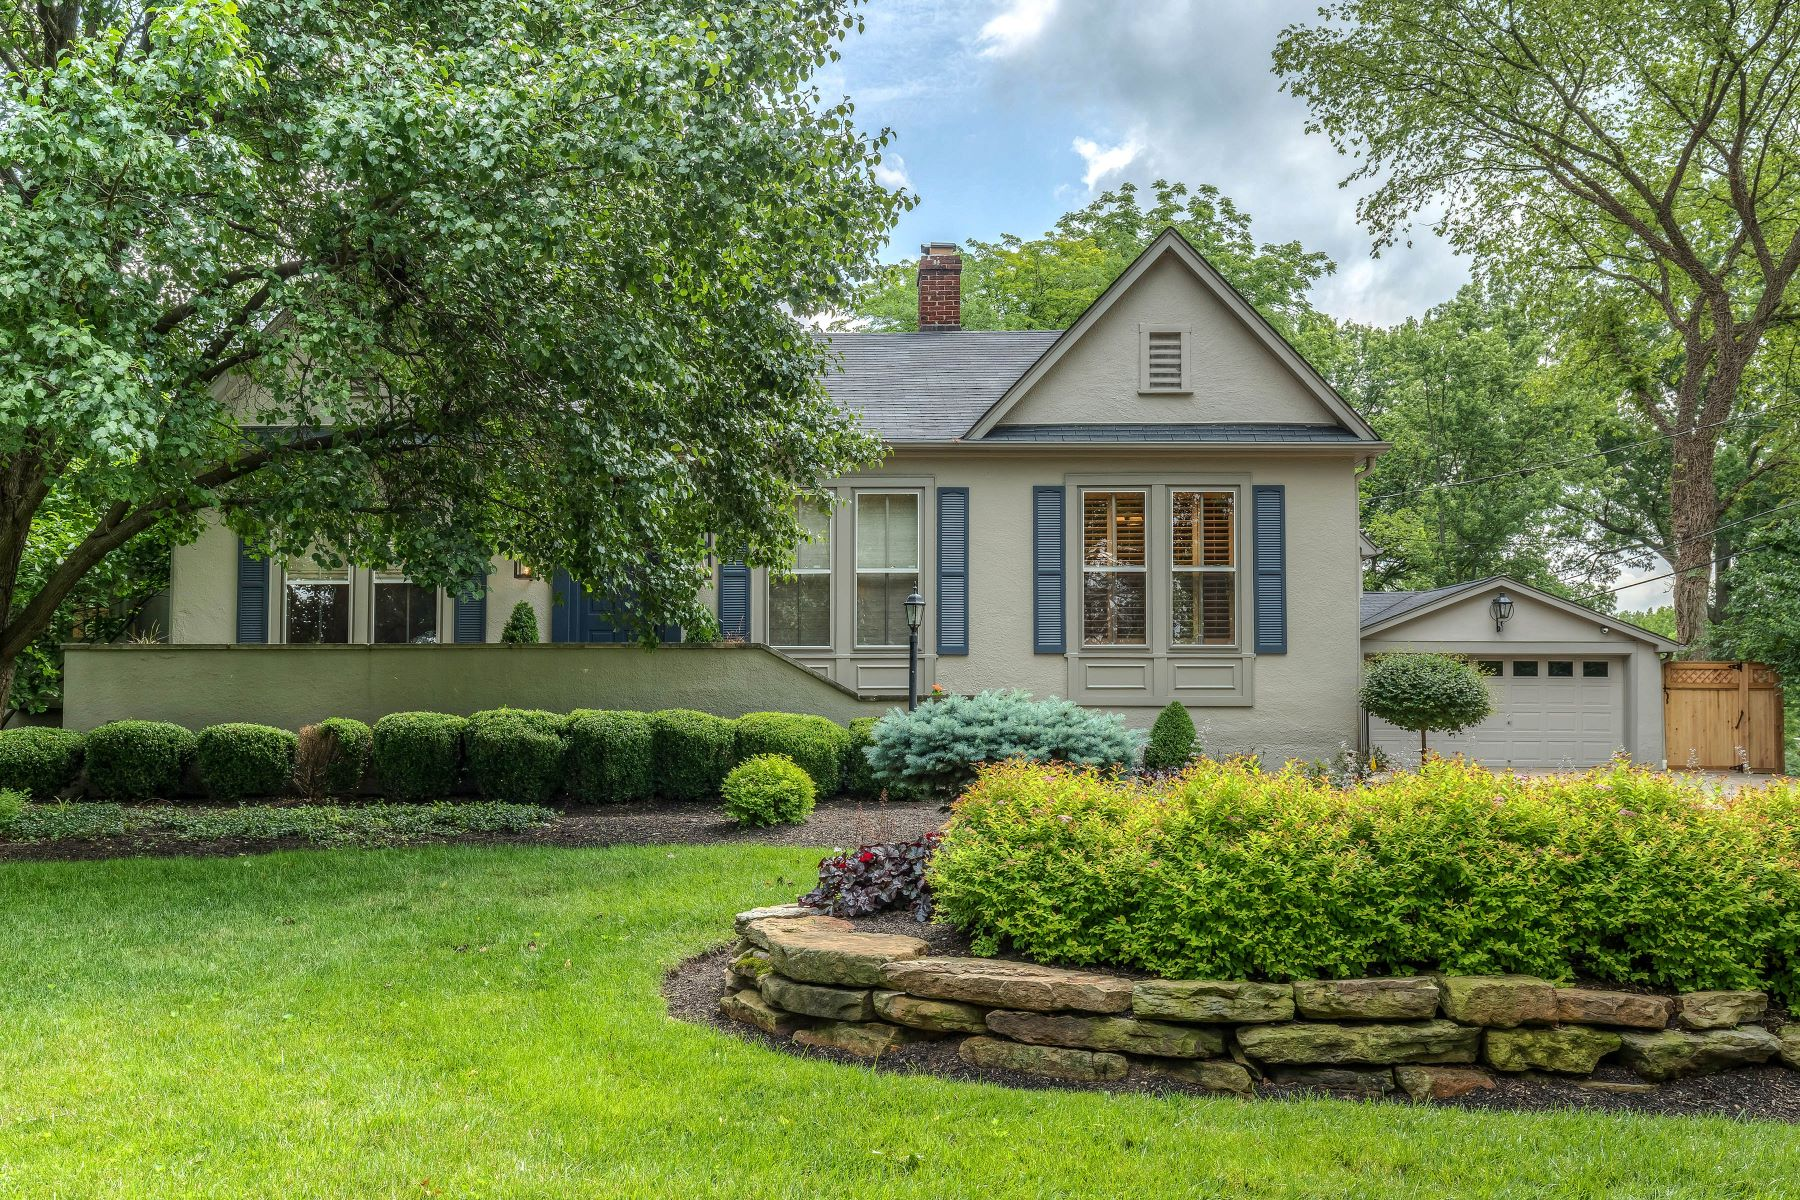 Single Family Homes for Sale at Entertainer's Delight in the Heart of Ladue 250 North Price Road Ladue, Missouri 63124 United States